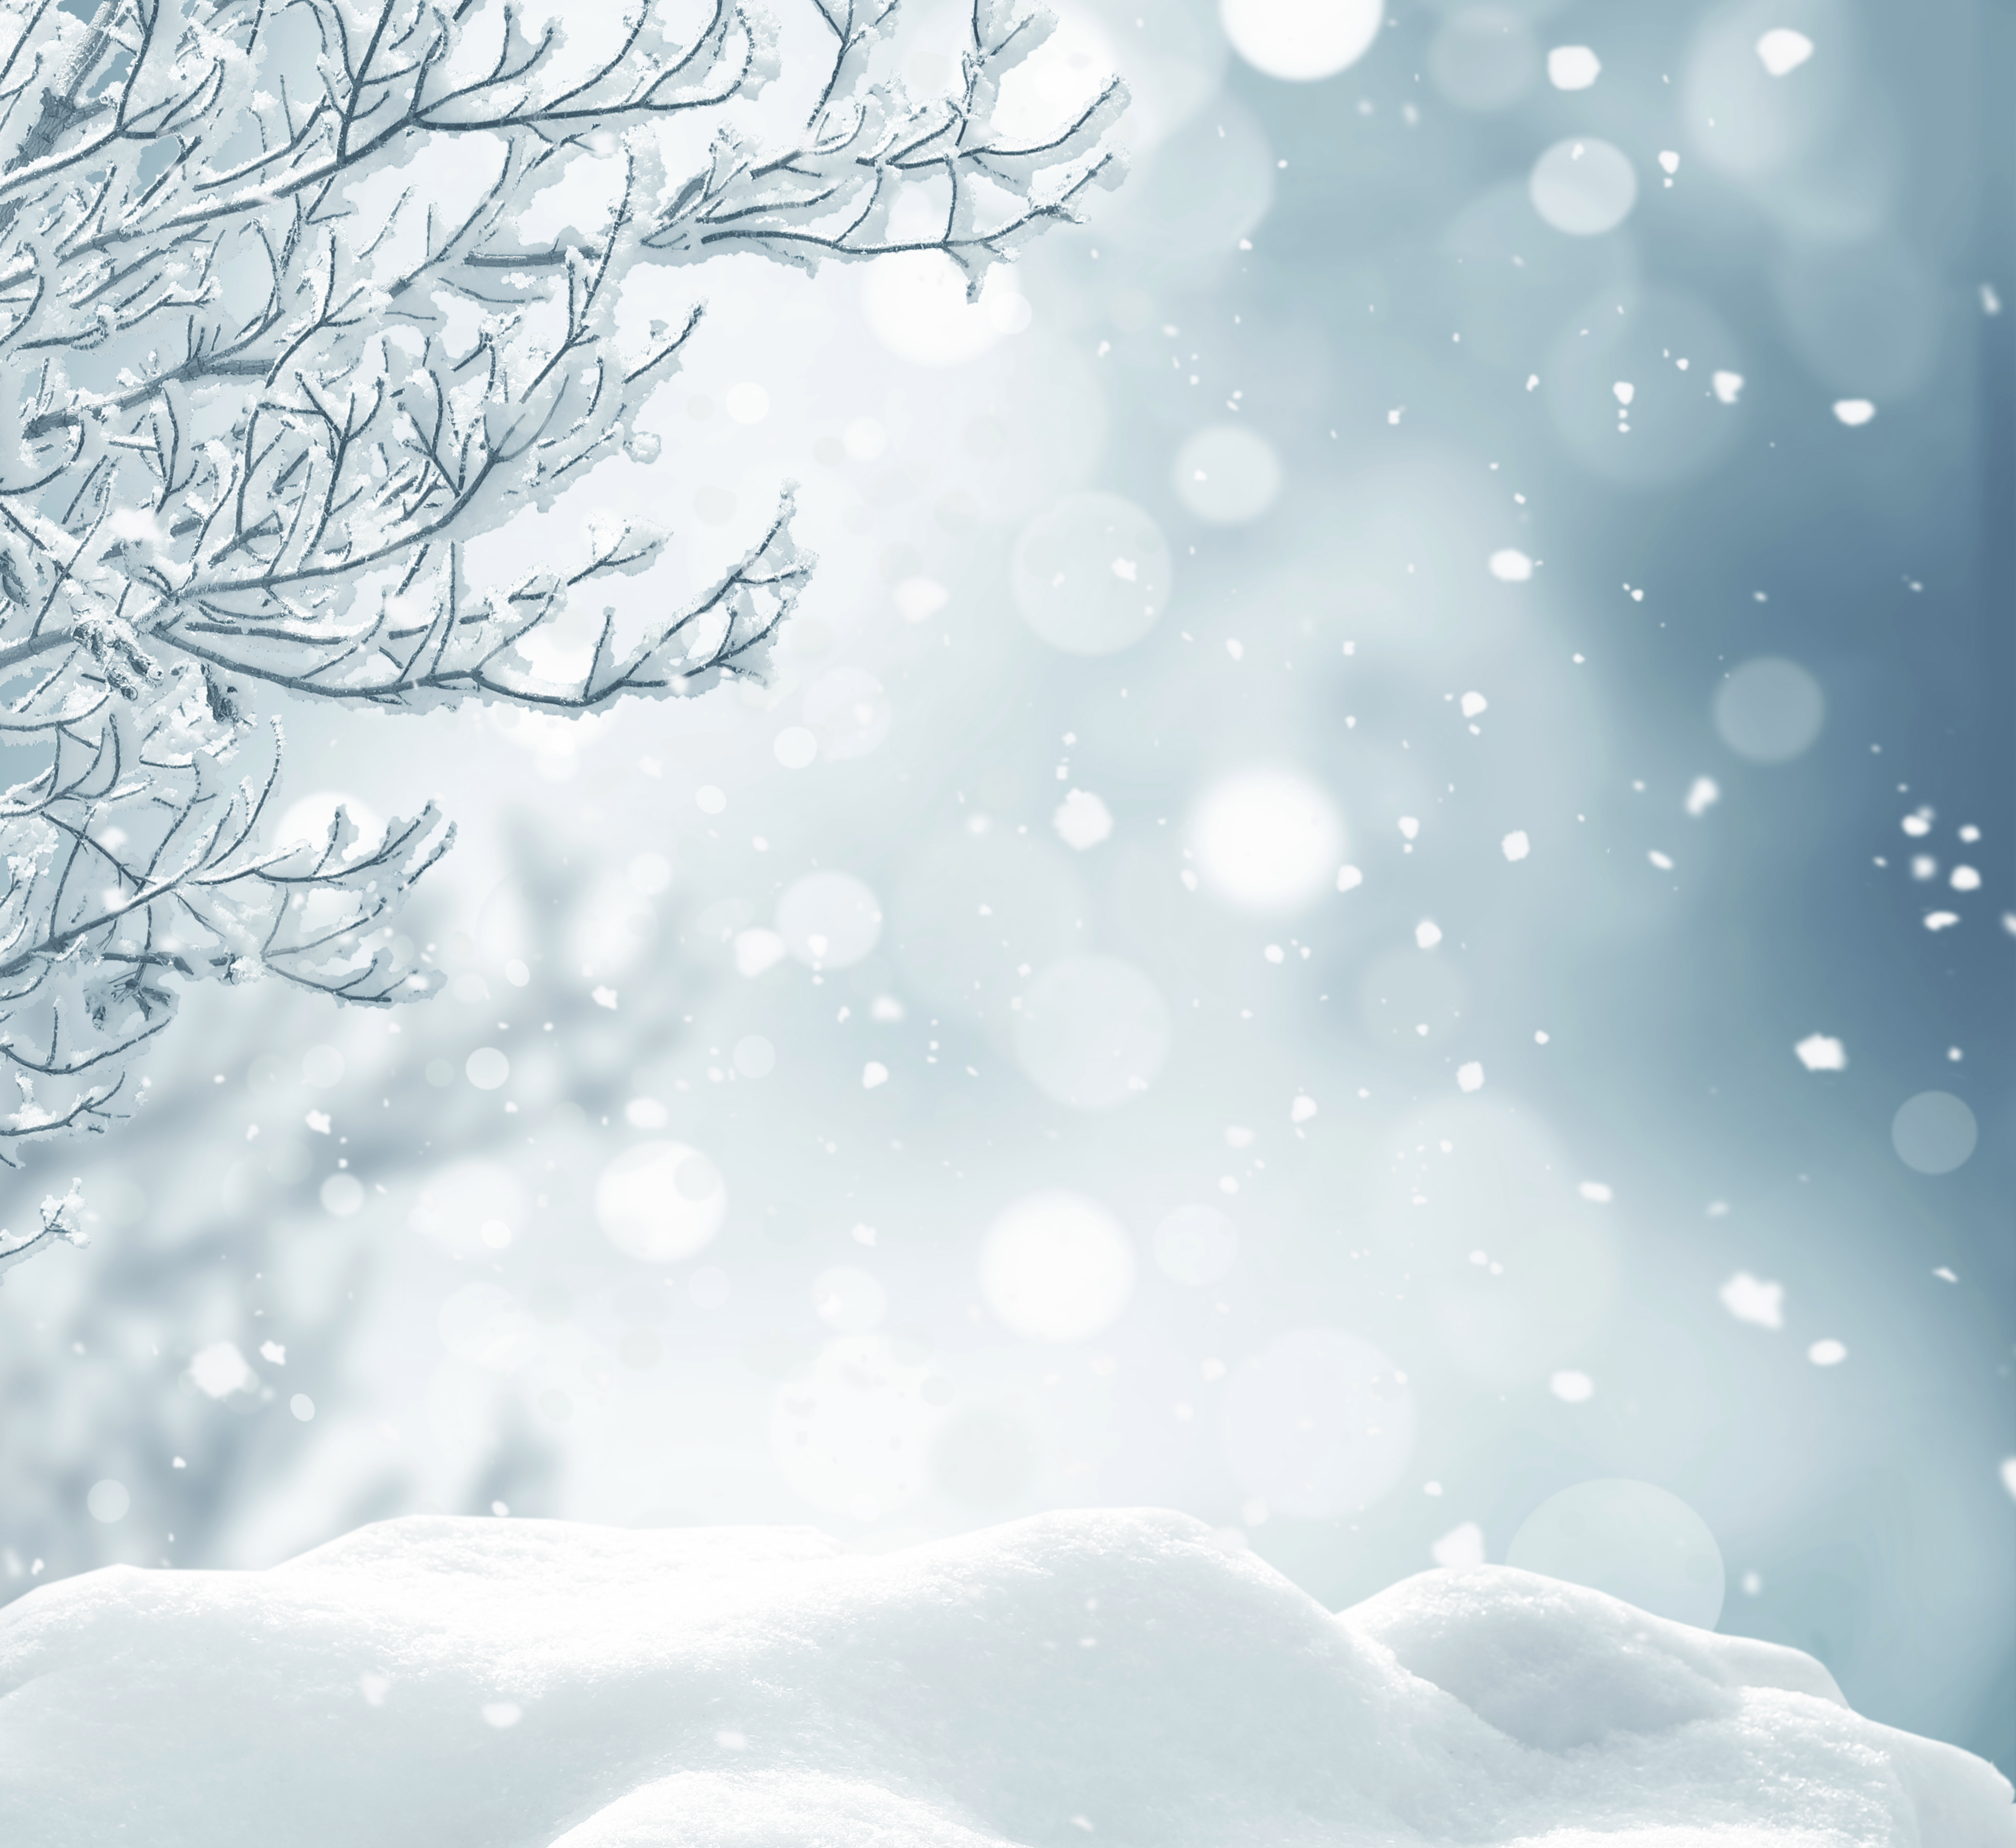 Snowy background clipart banner transparent library Snowy Background with Branches | Gallery Yopriceville ... banner transparent library